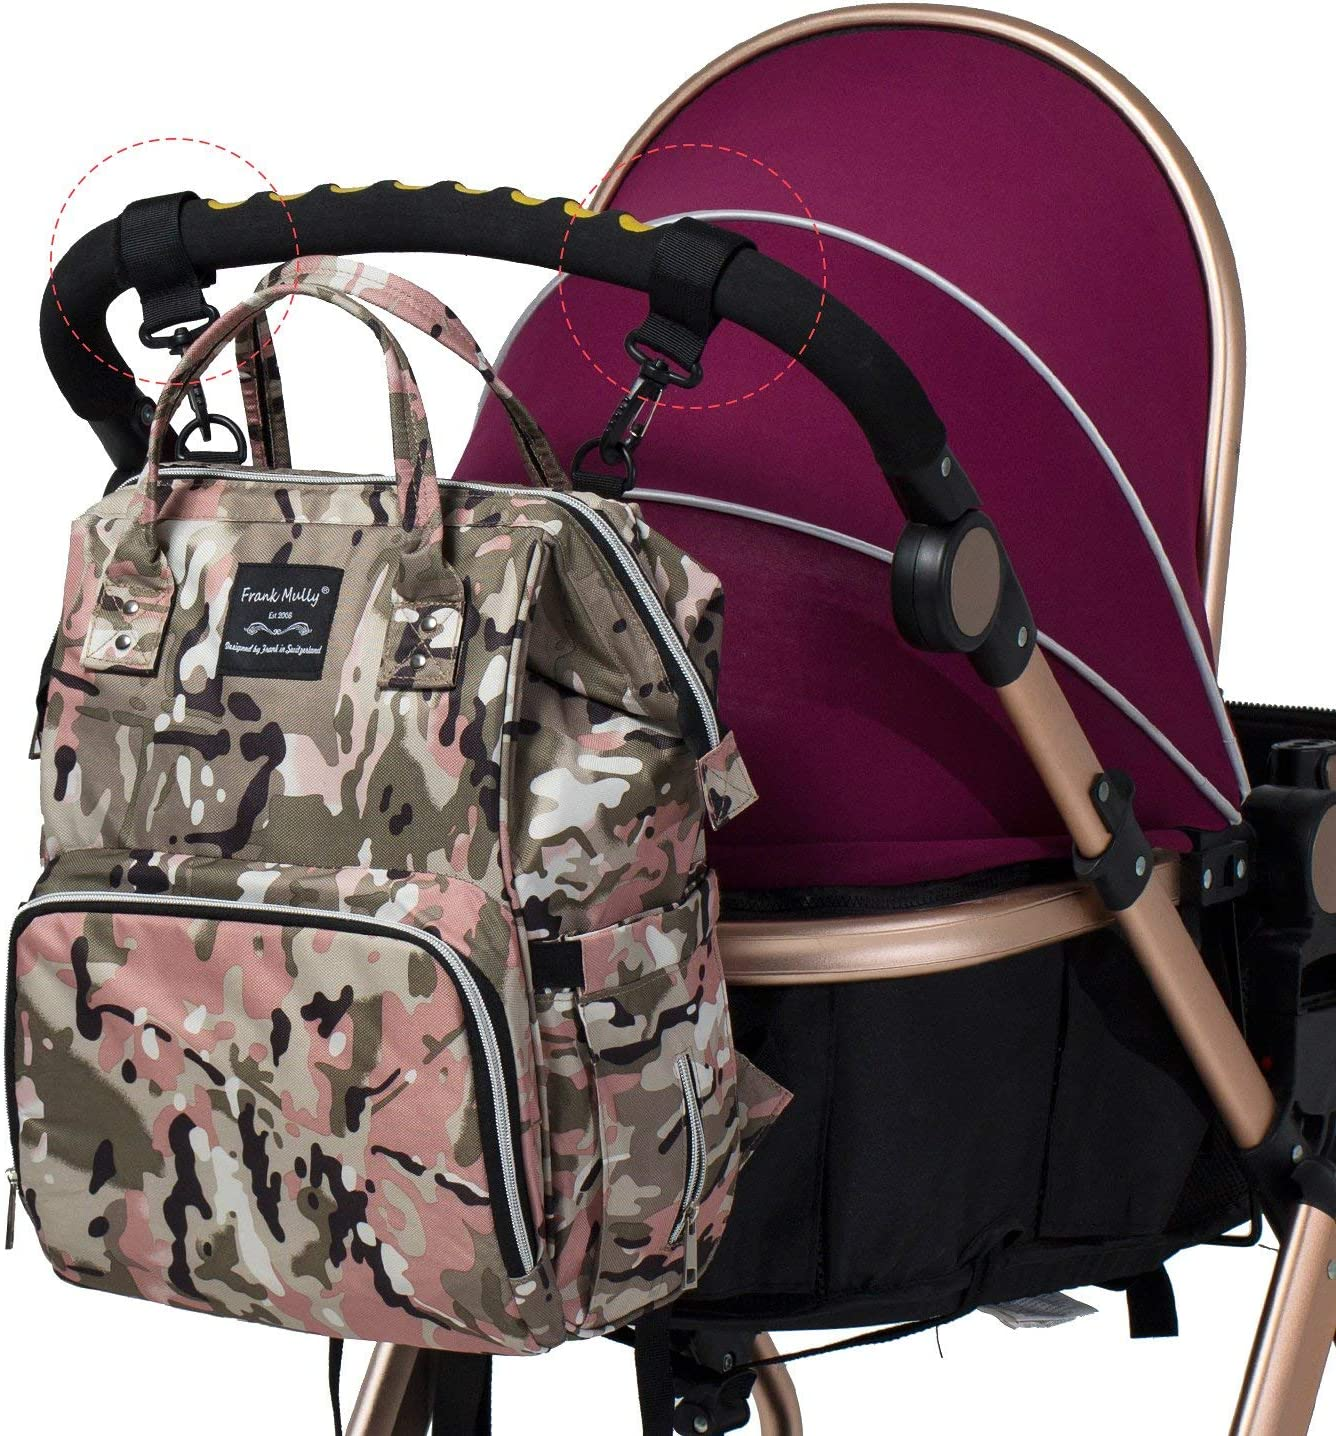 Pink Camo SoHo Diaper Bag Backpack Metropolitan 5 pcs Nappy Tote Bag for Baby mom dad Insulated Unisex Multifunction Large Capacity Waterproof Durable Includes Changing pad Stroller Straps